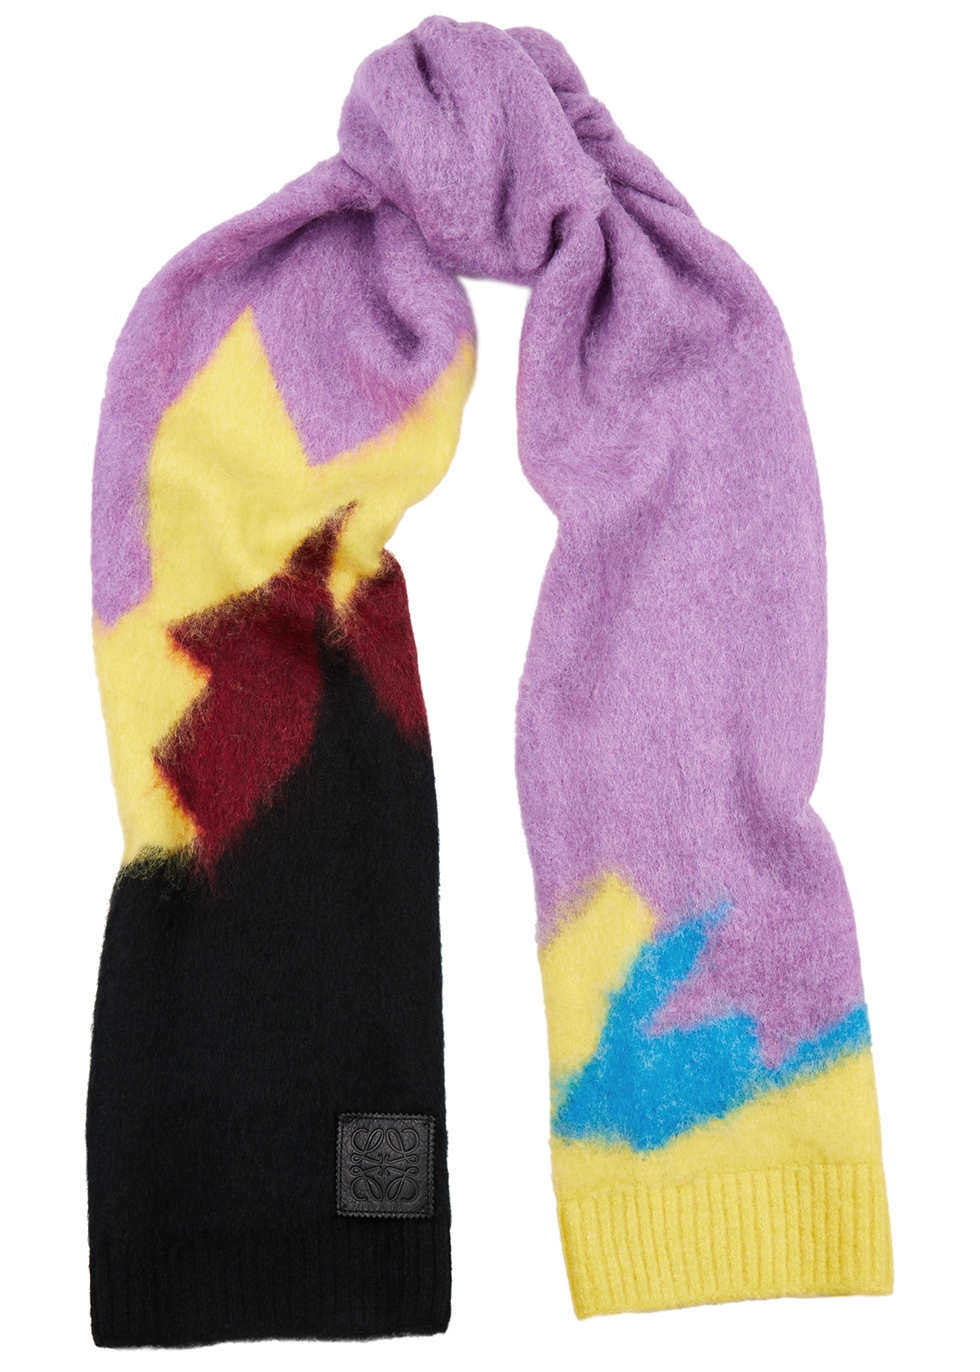 Colour-blocked knitted scarf